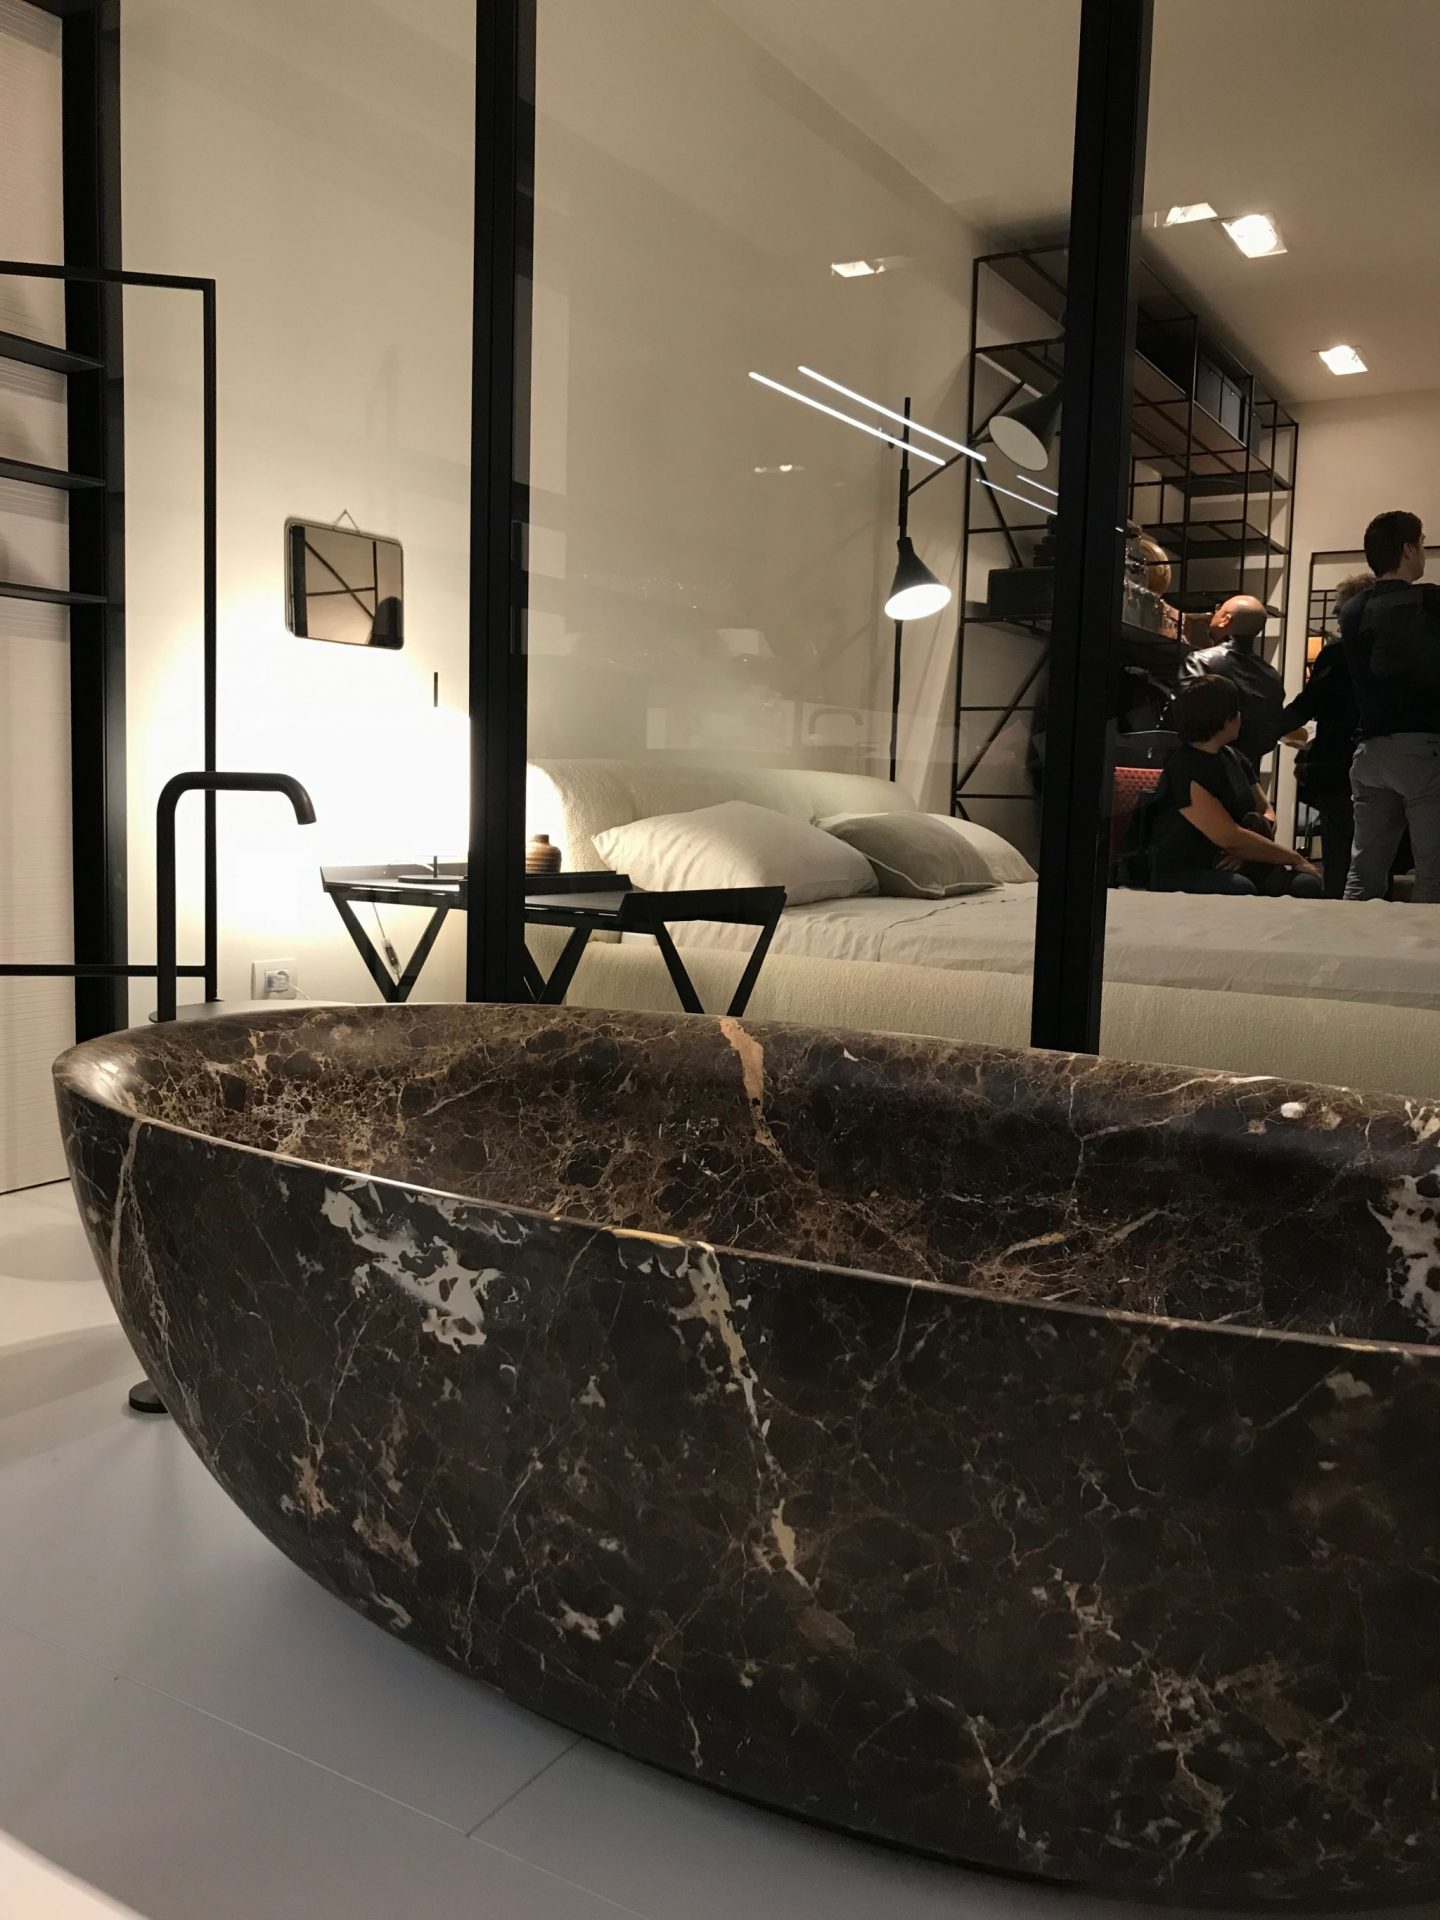 Fisher Island Bath, Boffi, highlights from Salone del Mobile 2018, via hellopeagreen, interior blogger